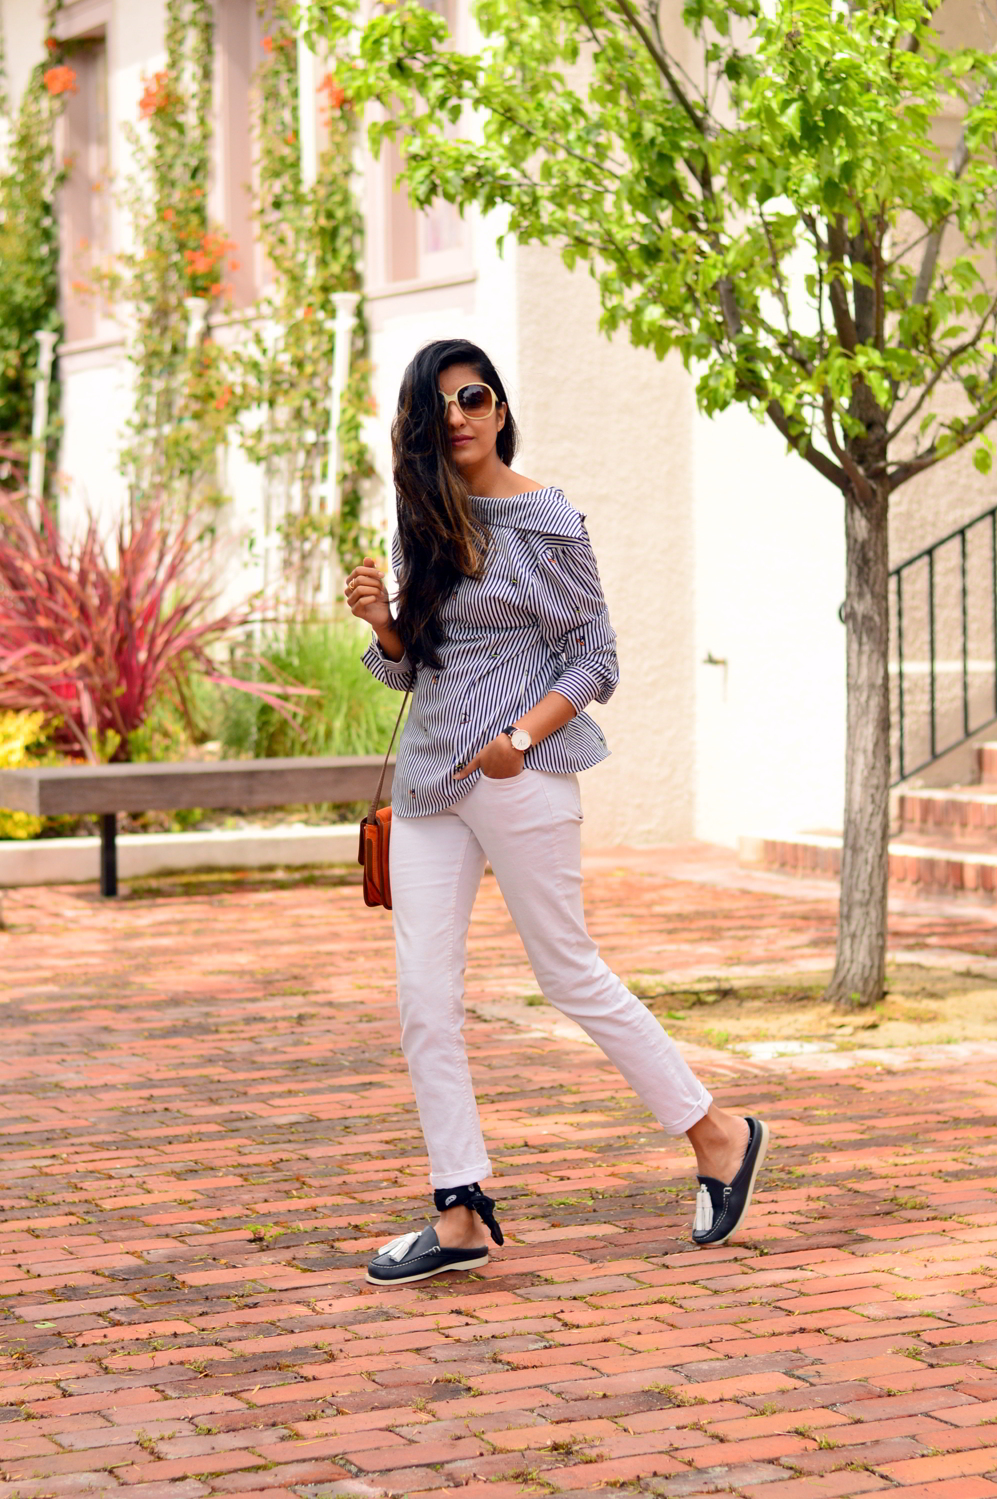 buttondown-shirt-backwards-nautical-vibes-loafers-slides-tassels-summer-spring-style-outfit-casual-blogger 5